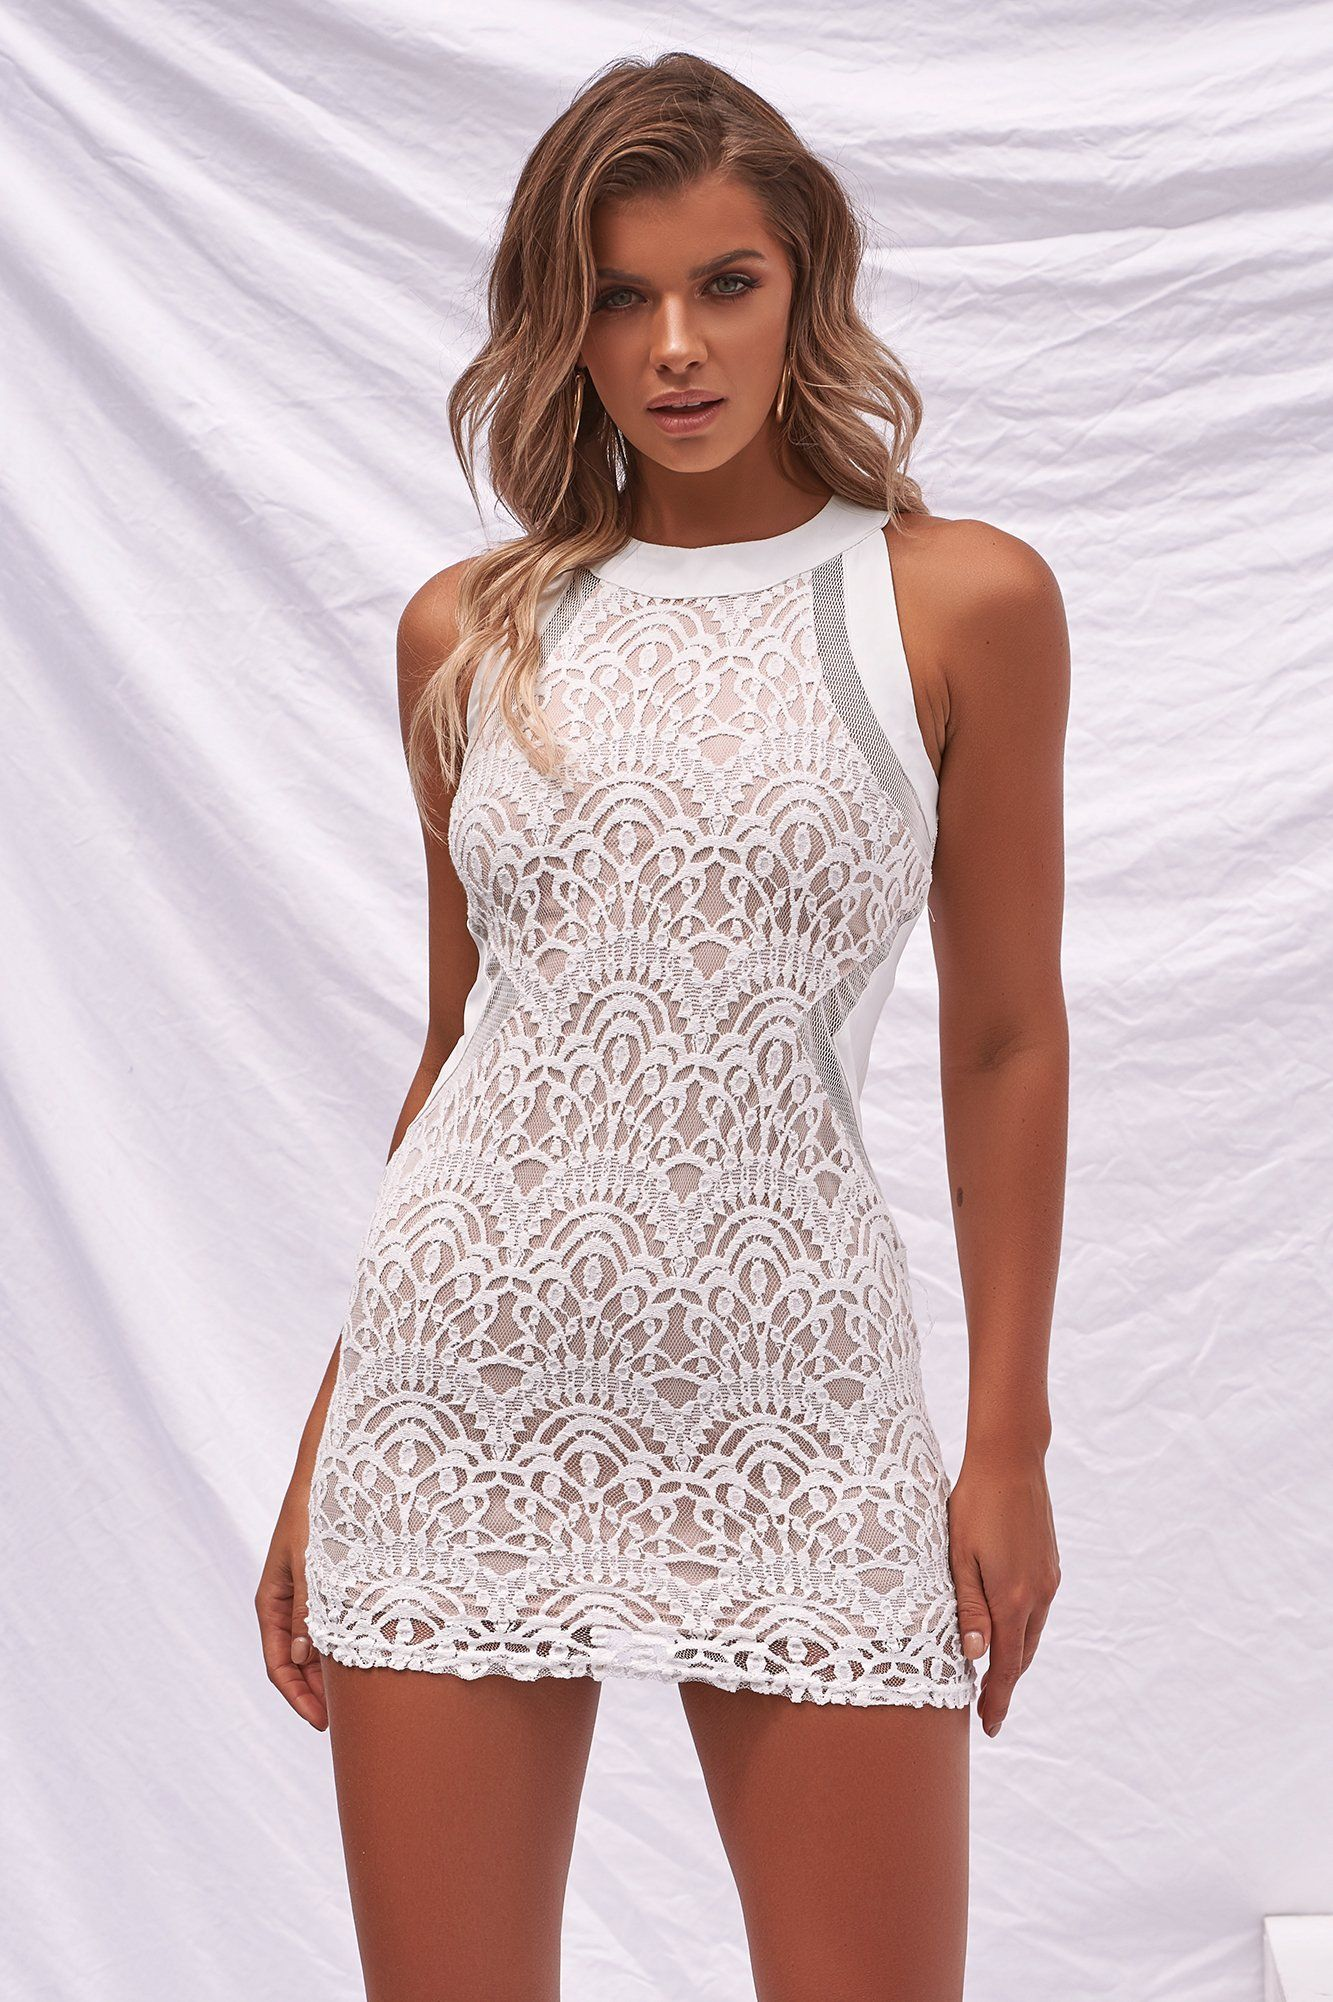 Higher Love Bodycon Dress White Style Bodycon Dress